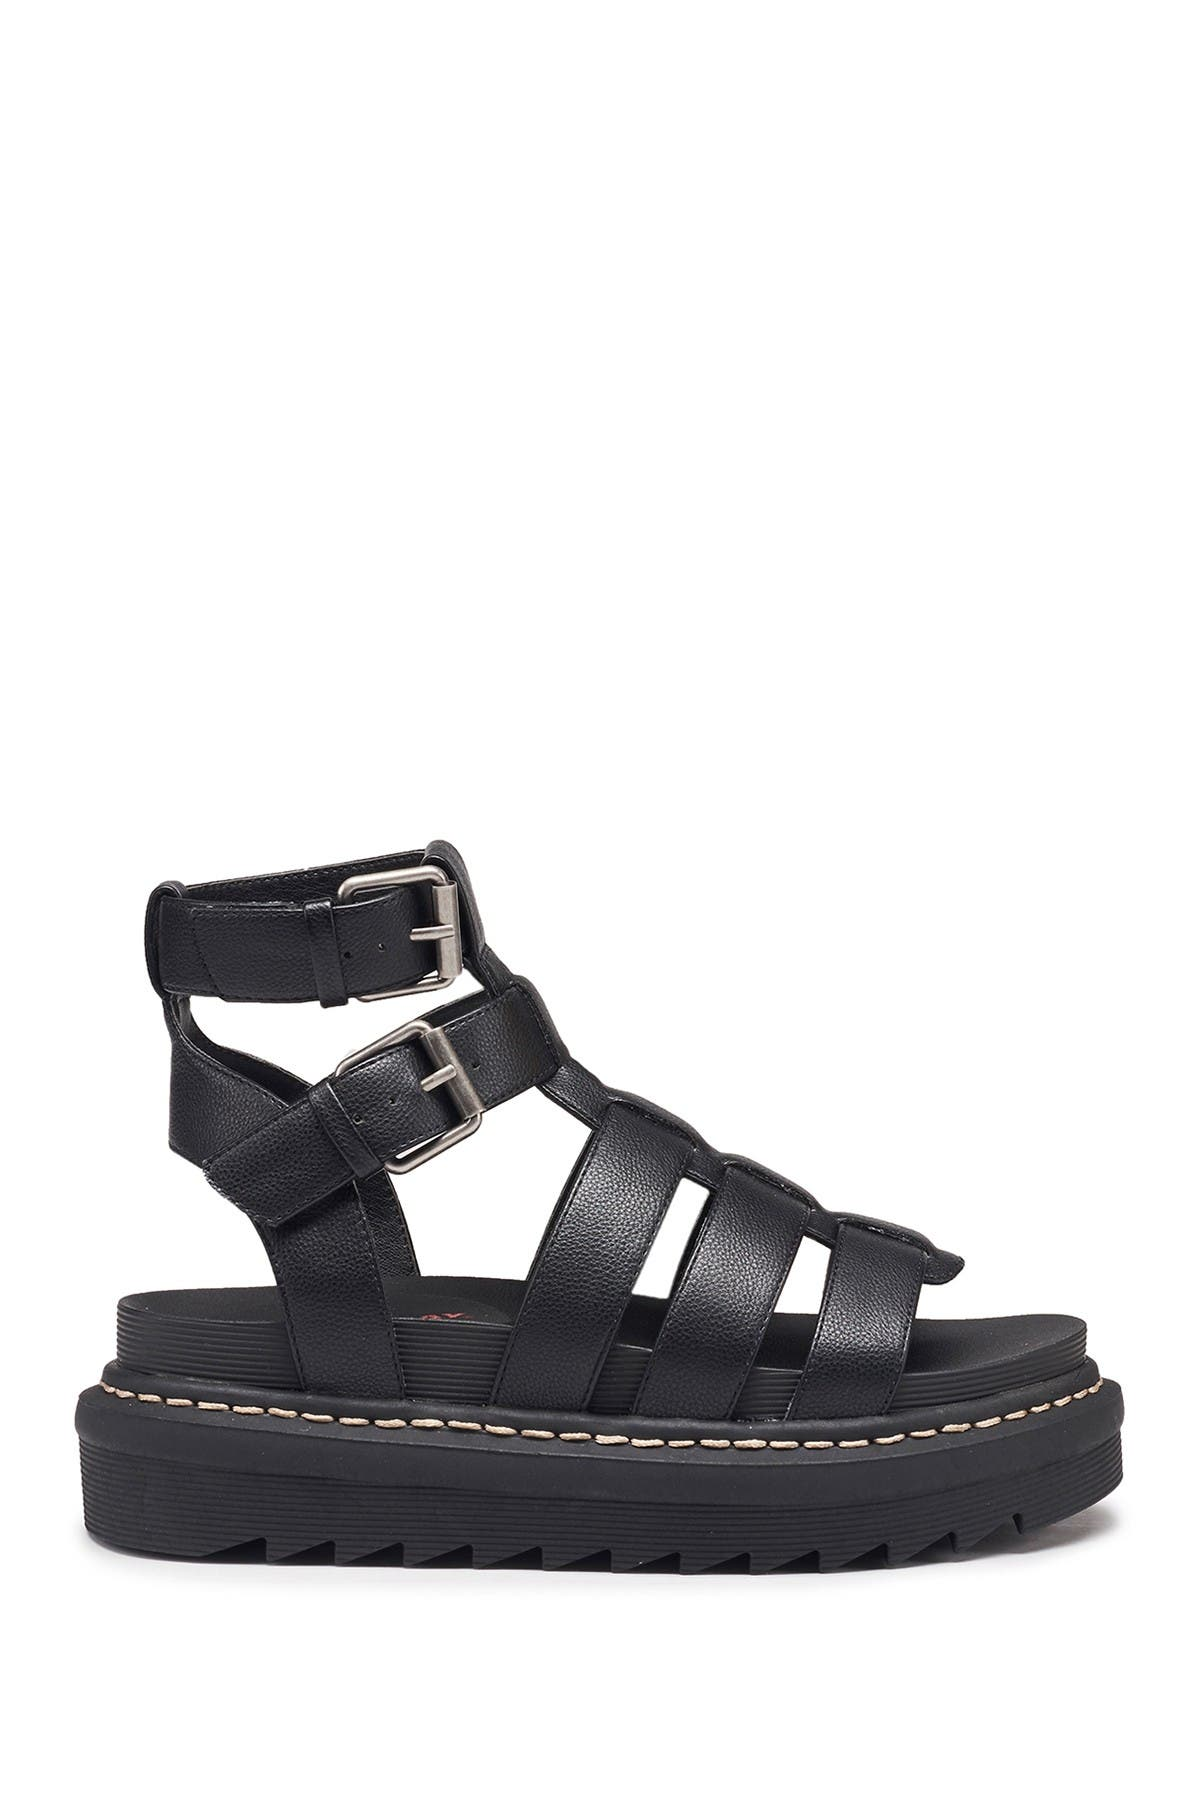 Image of Unionbay Downtown Strappy Sandal